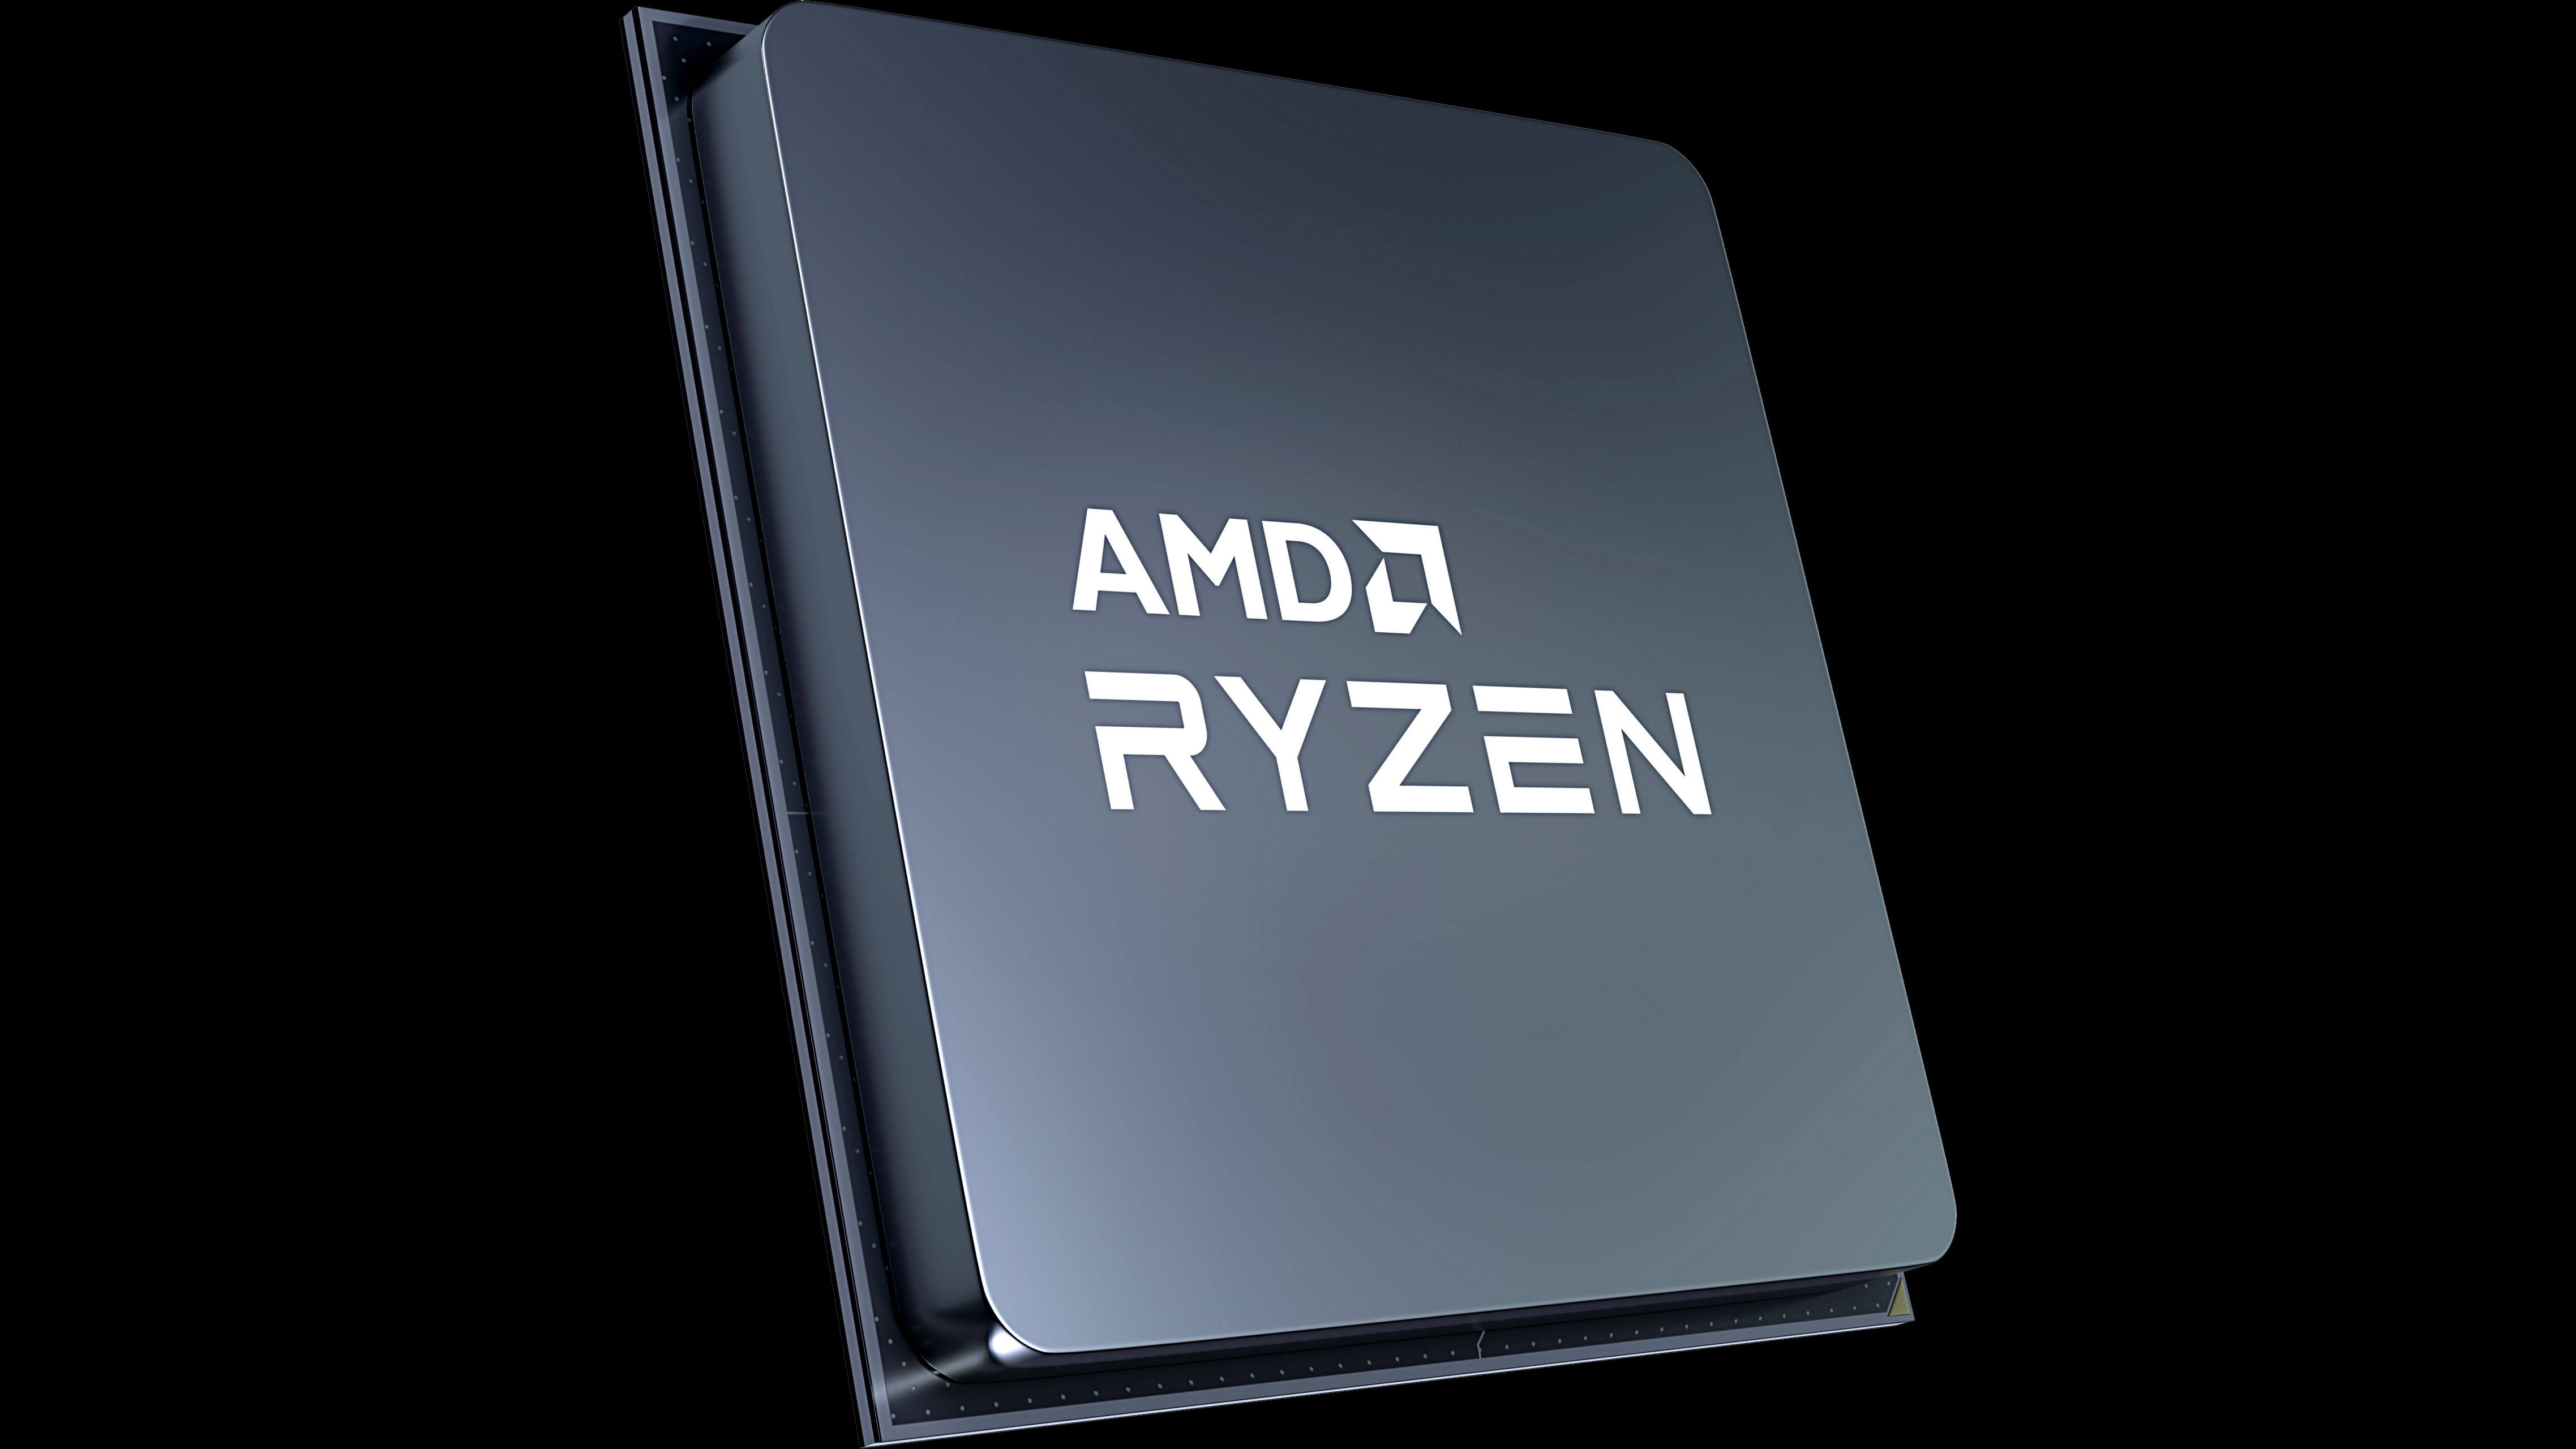 Amd Ryzen 7 5800x Emerges As A Serious Rival For The Intel Core I9 10900k Tom S Hardware